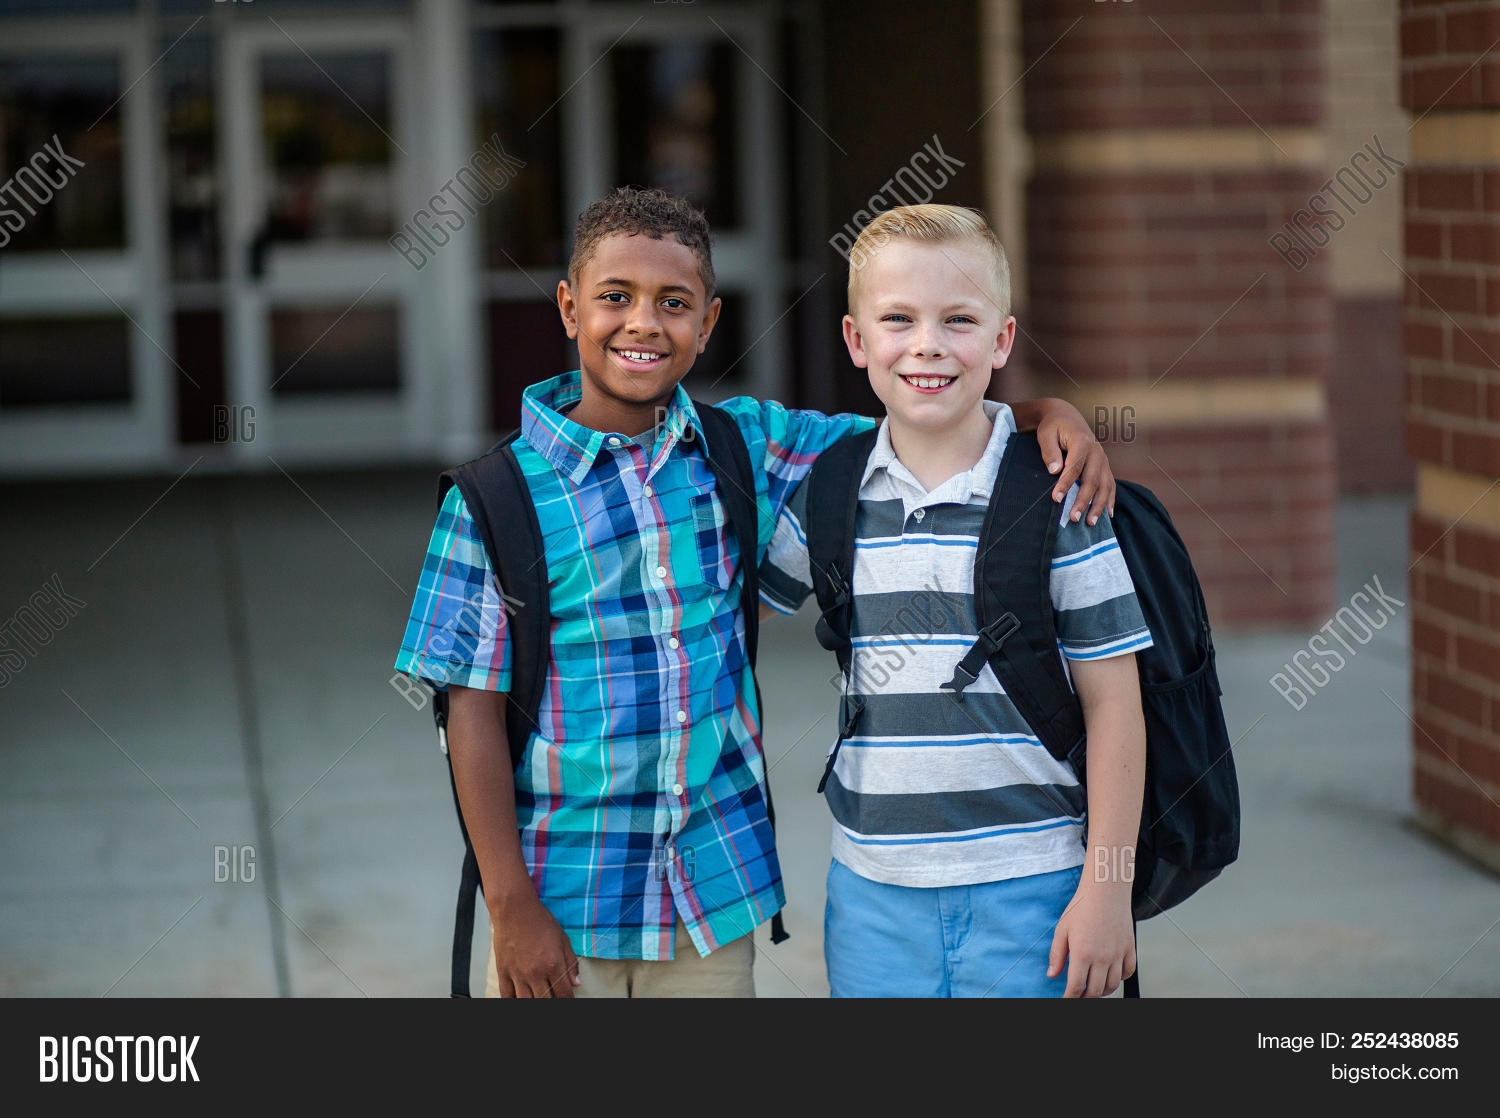 african american,arms around,backpack,beautiful,black,blond,building,child,childhood,children,copy space,cute,diverse,diversity,doors,educate,education,elementary,entrance,ethnicity,expression,friend,friends,friendship,front door,grade,group,hanging out,happy,hispanic,kid,kids,learning,little,outside,playful,playground,portrait,school,school kids,smile,standing,student,students,talking,together,togetherness,two,walking